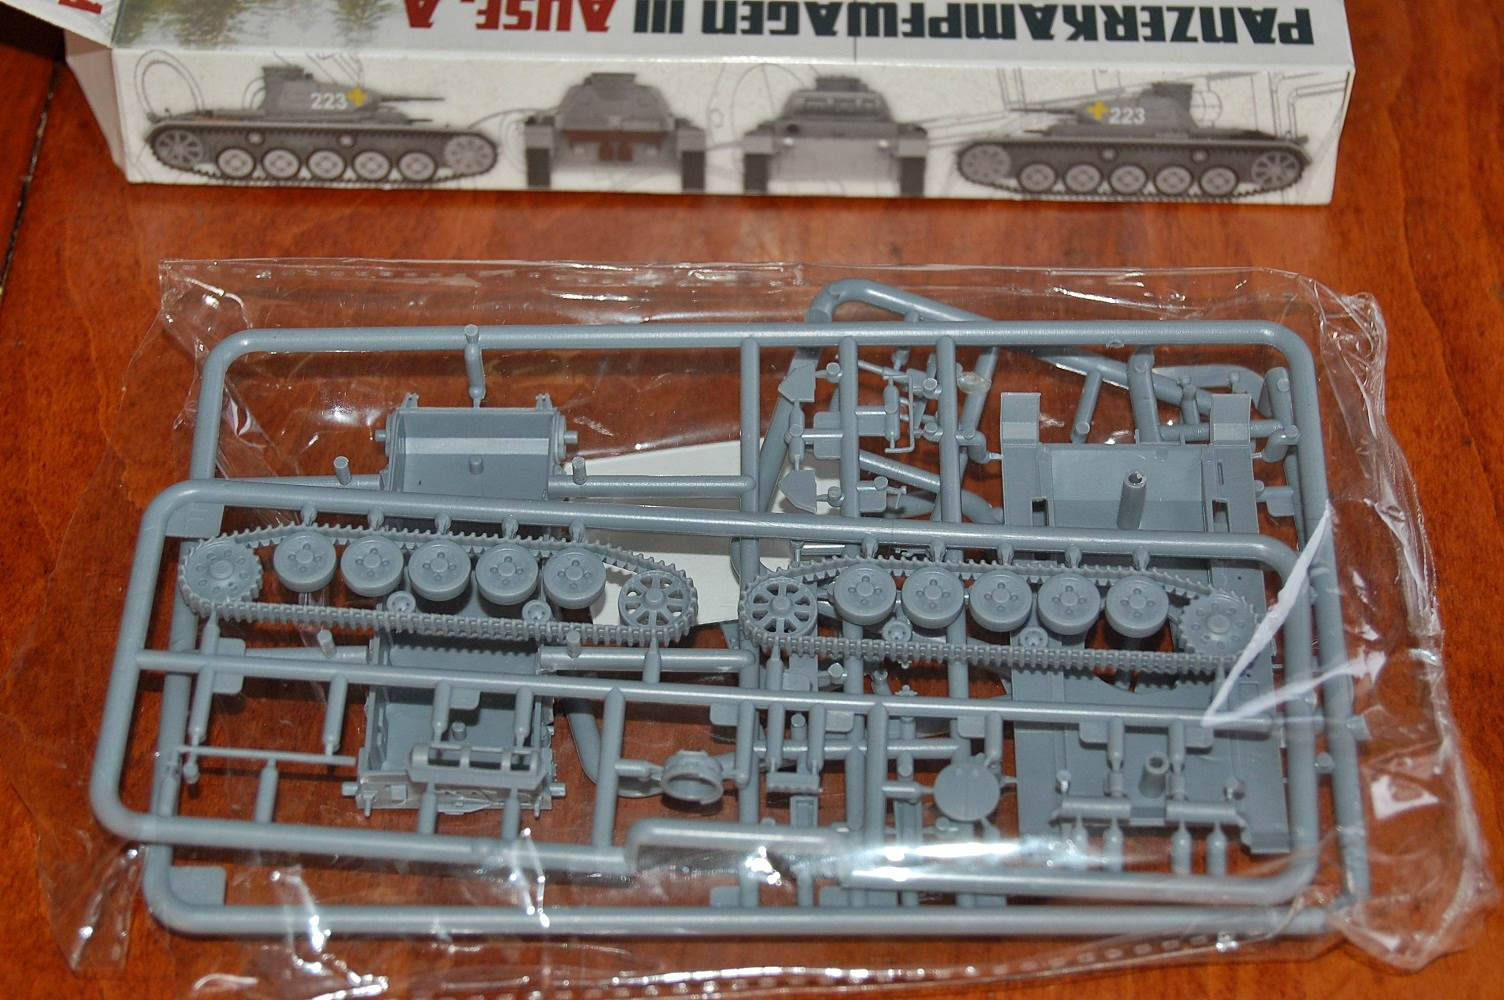 WORLD AT WAR MAGAZINE AND MODEL WAW001 Panzer III Ausf A